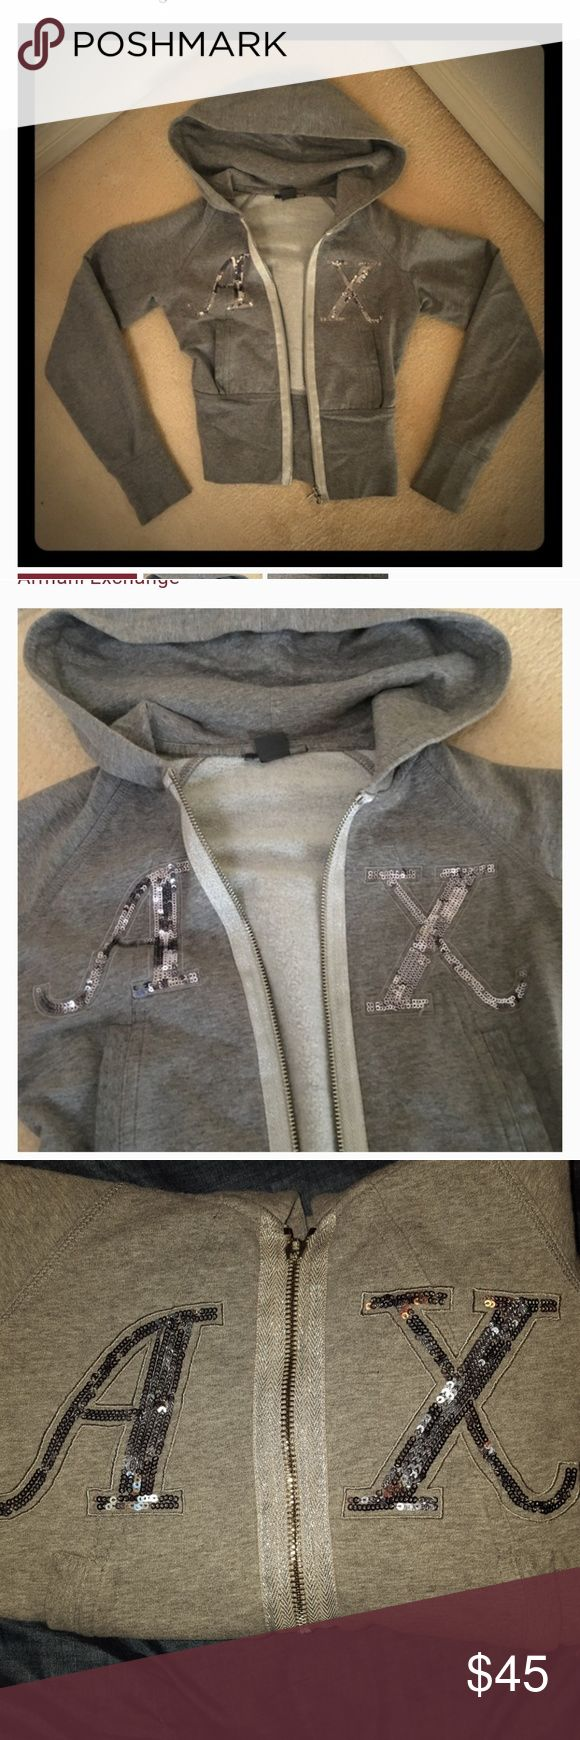 Armani Exchange Sequin Fleece Hoodie XS Armani Exchange grey fleece zip up hoodie. With sequin AX on chest. Very comfortable. Matches great with grey or black leggings. Zipper works perfect, missing zipper hook to pull it up and down shown in the 6th picture above. Easy repair. Armani Exchange Jackets & Coats